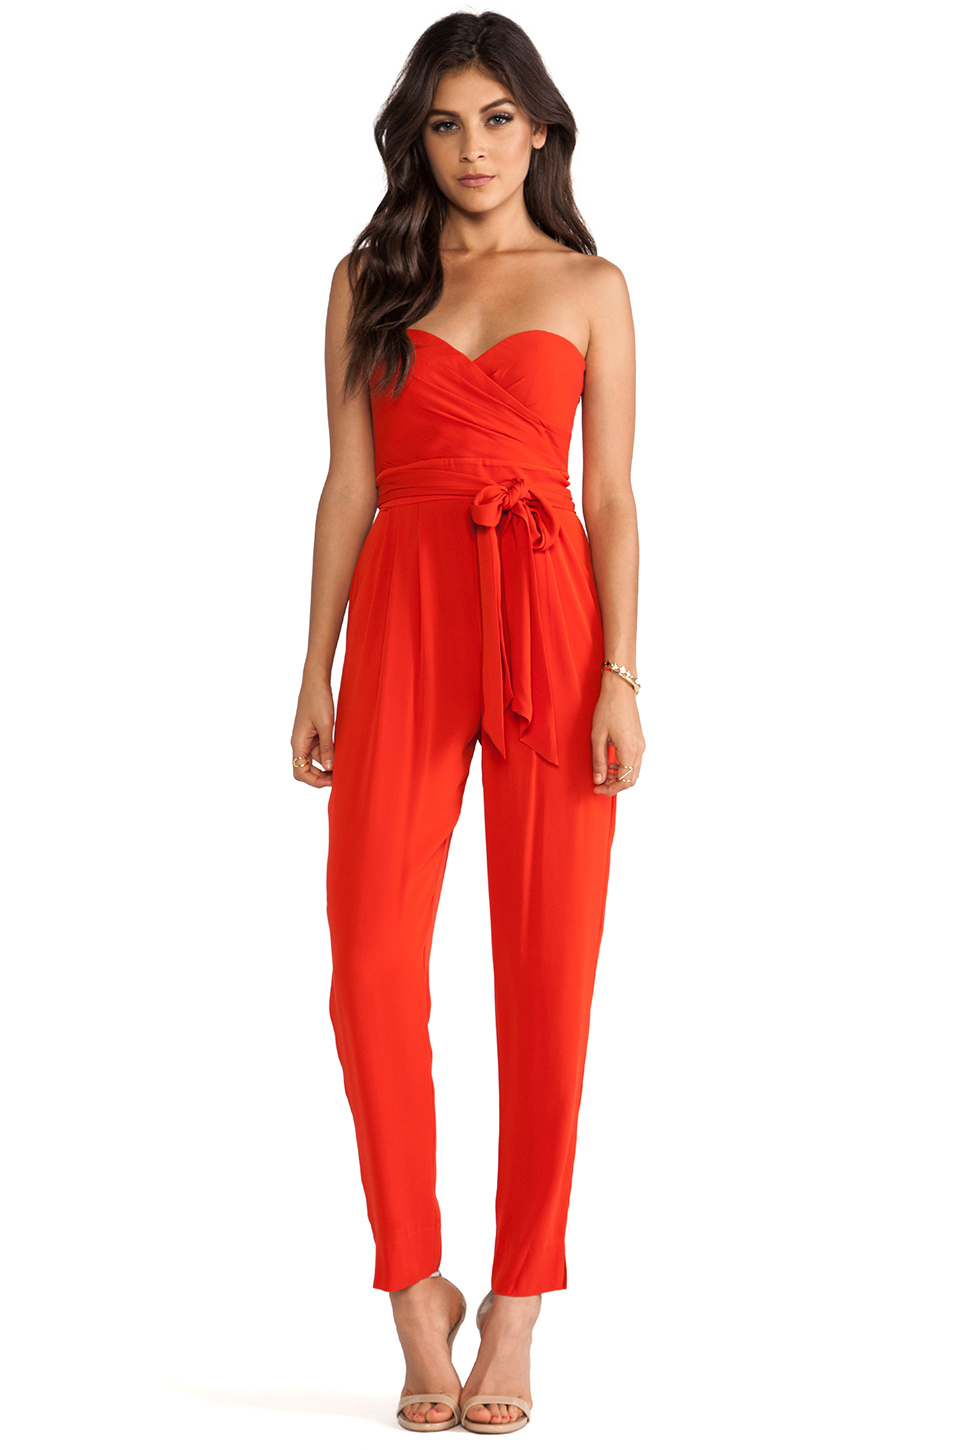 Red Jumpsuit Strapless - Breeze Clothing